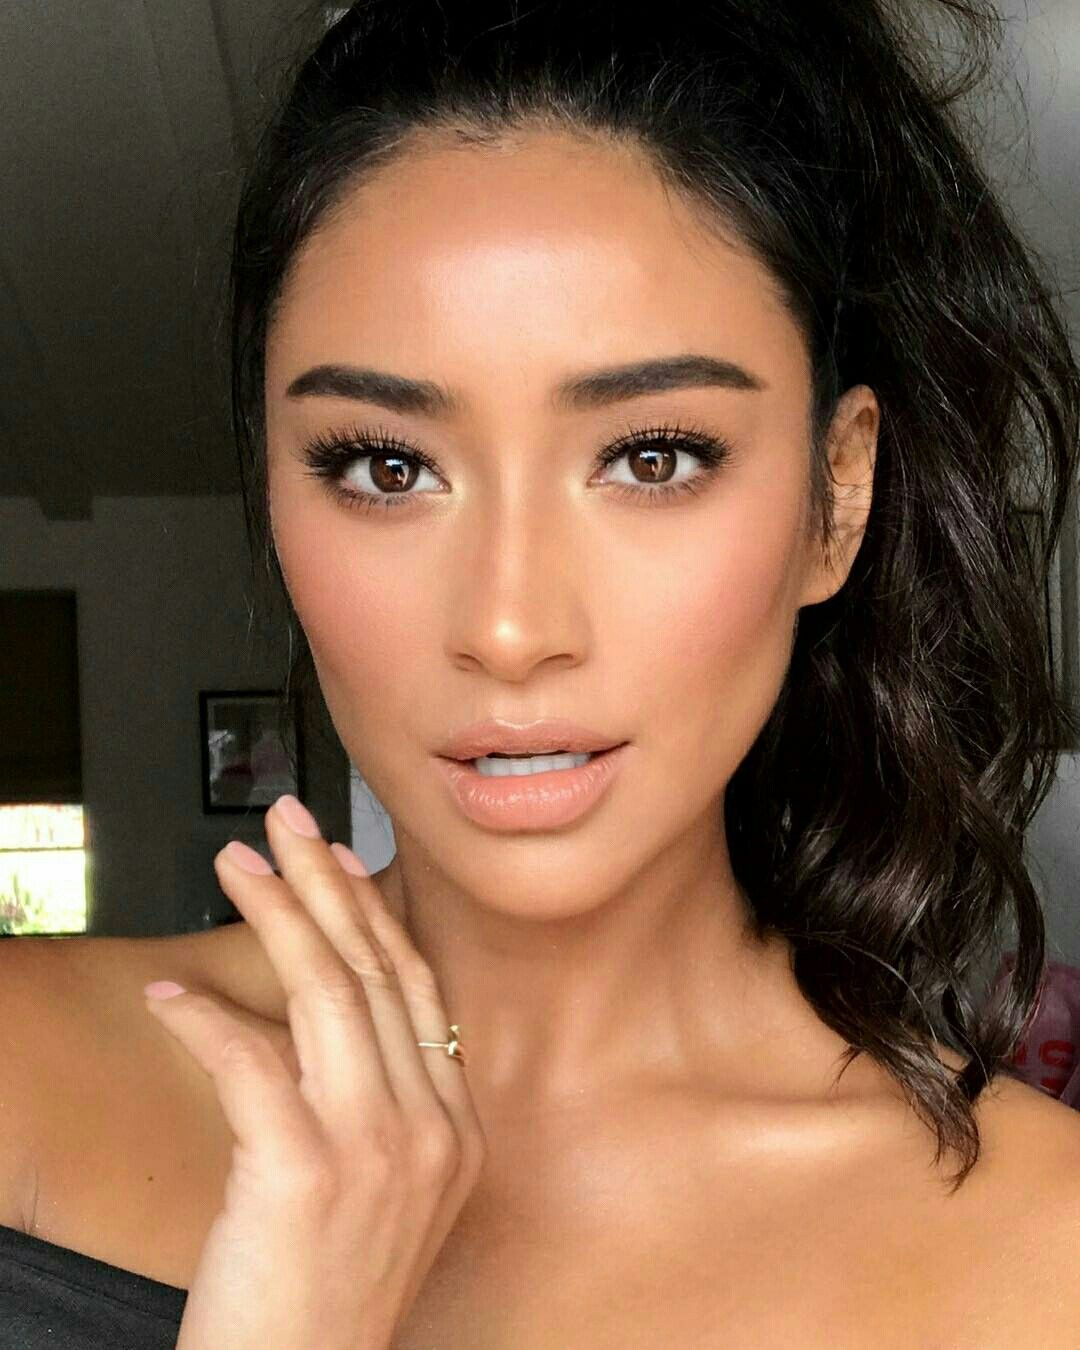 Pin By Shay On Hallway In 2019: Shay Mitchell - No Makeup Makeup Look